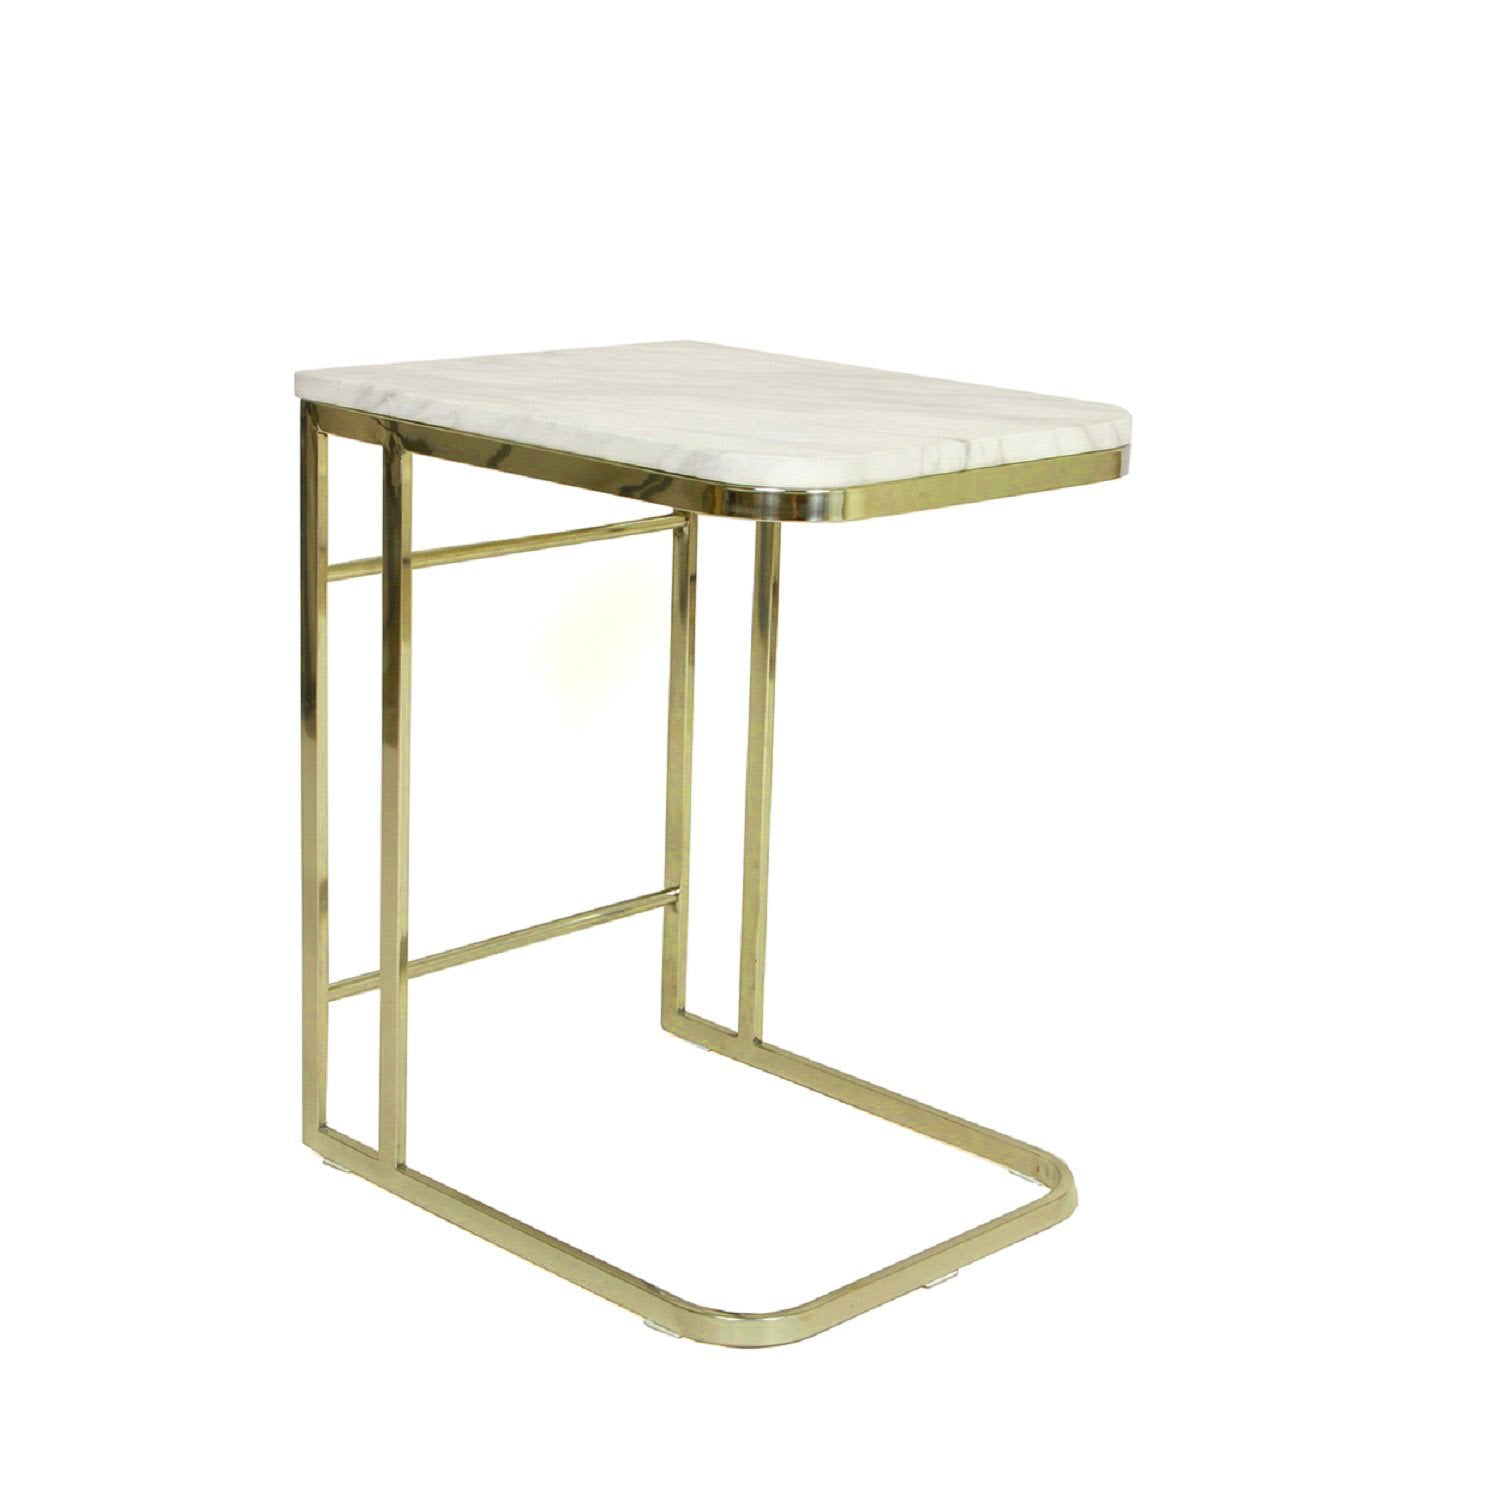 [FHT40MBLGLD] Carrara Marble Side Table With Stainless Steel Frame Sale